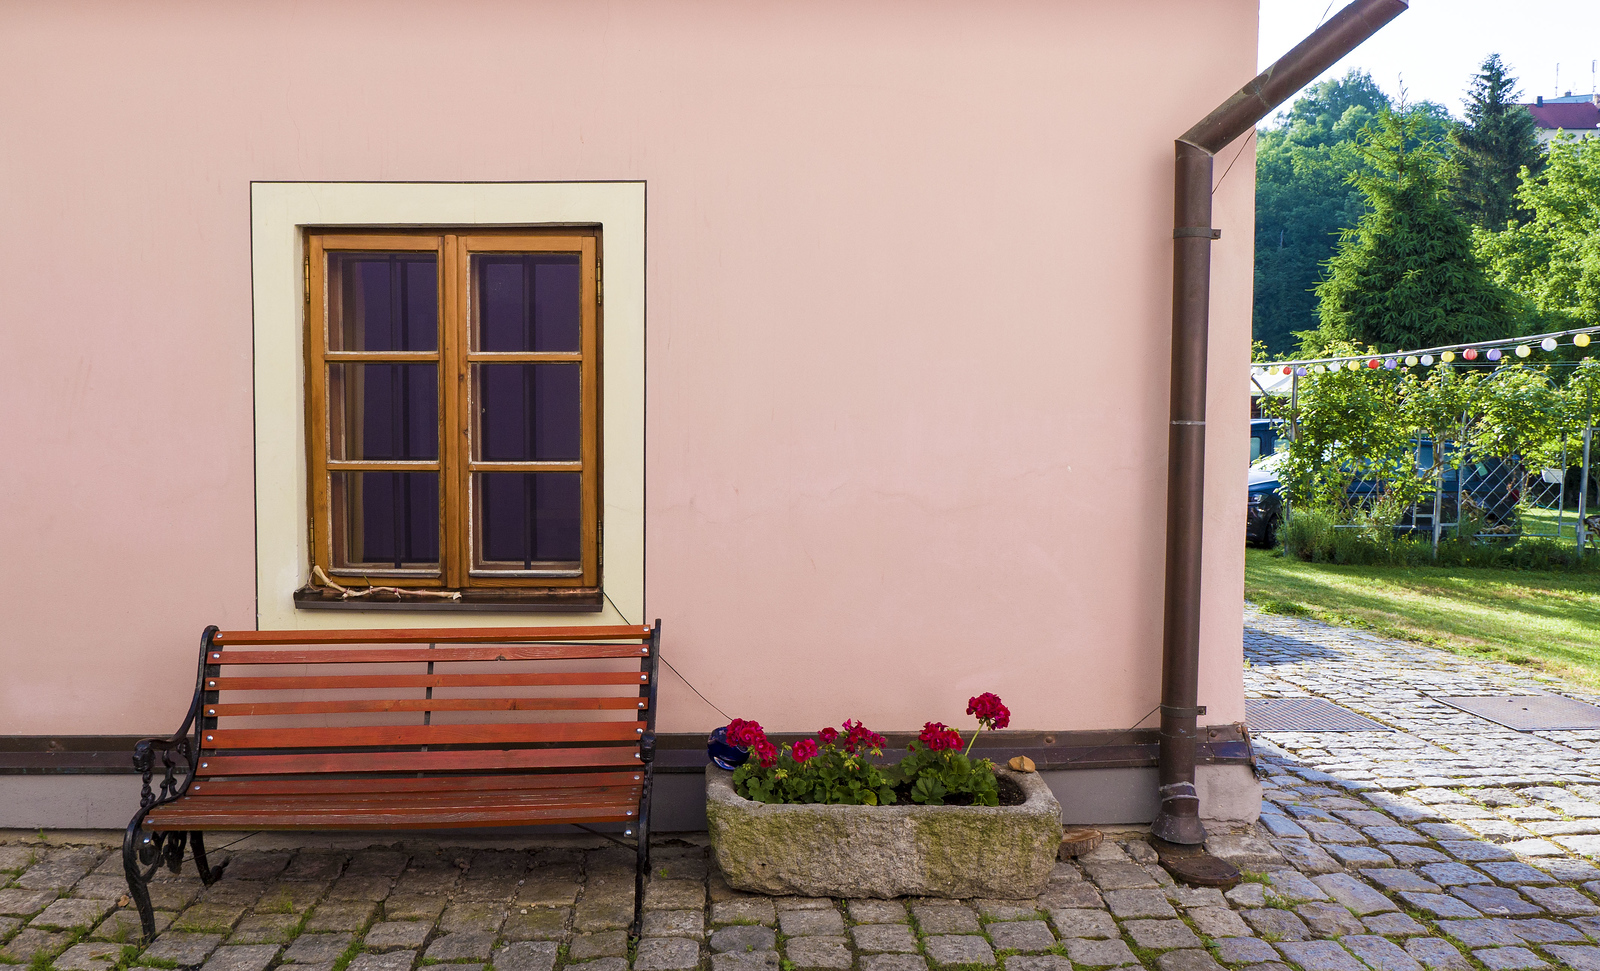 Where to Stay in Cesky Krumlov - Orangerie Apartment